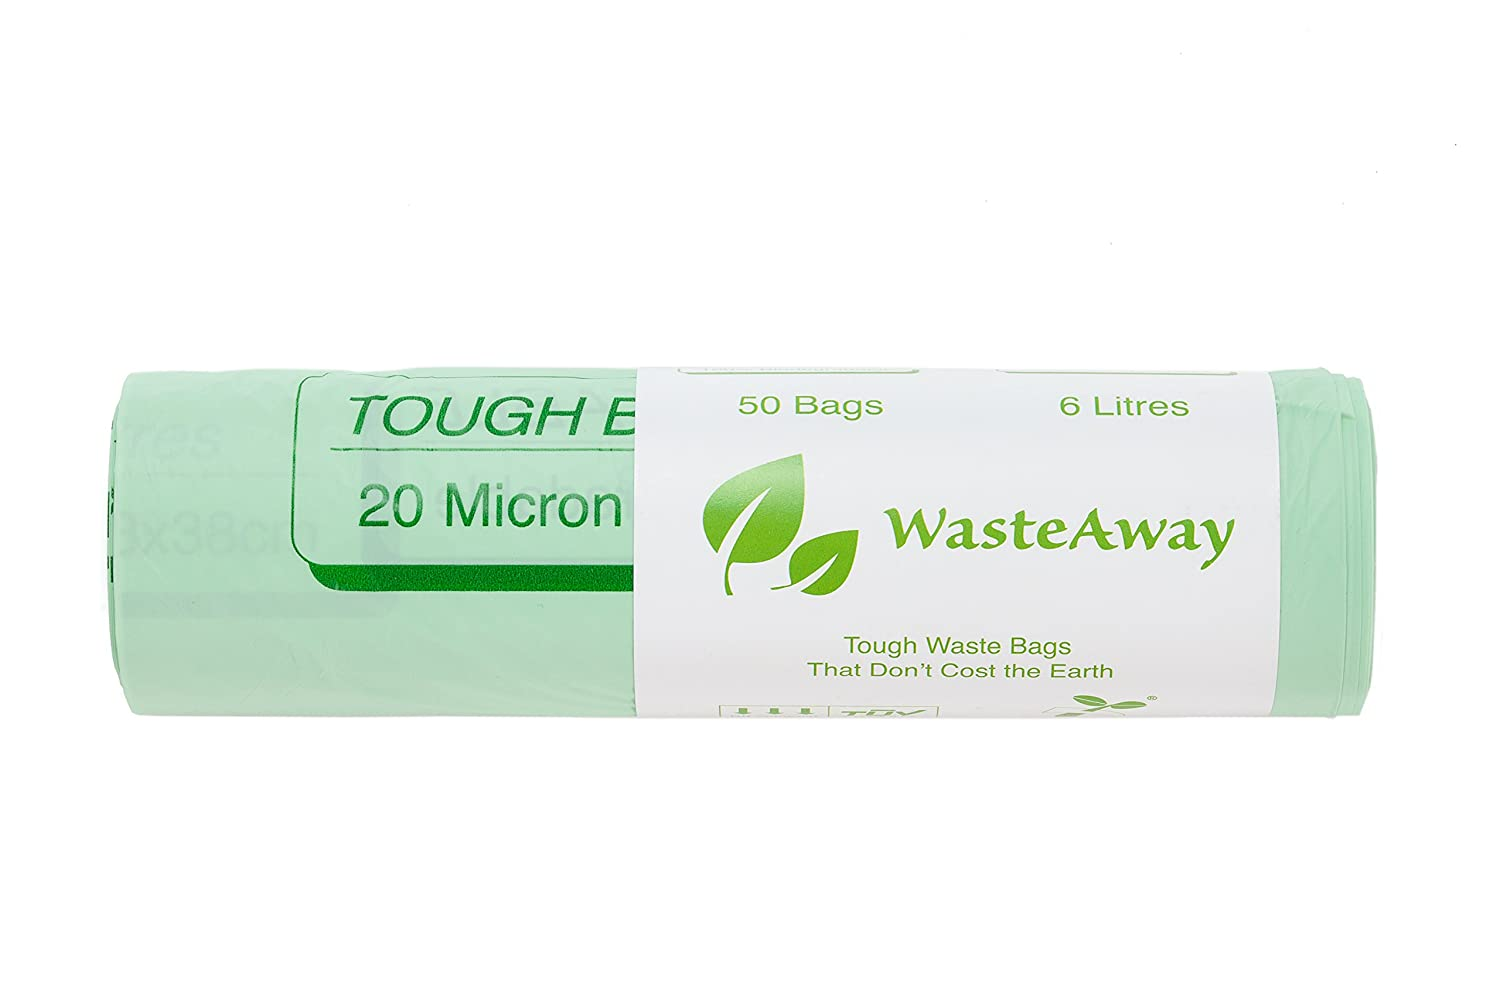 WasteAway Bio Bags - 6 Litre Compostable, Biodegradable Kitchen Bin Liners - Compost Bin Bags for Food Waste - 50 Bags - 20 Micron Thick Kayar Life